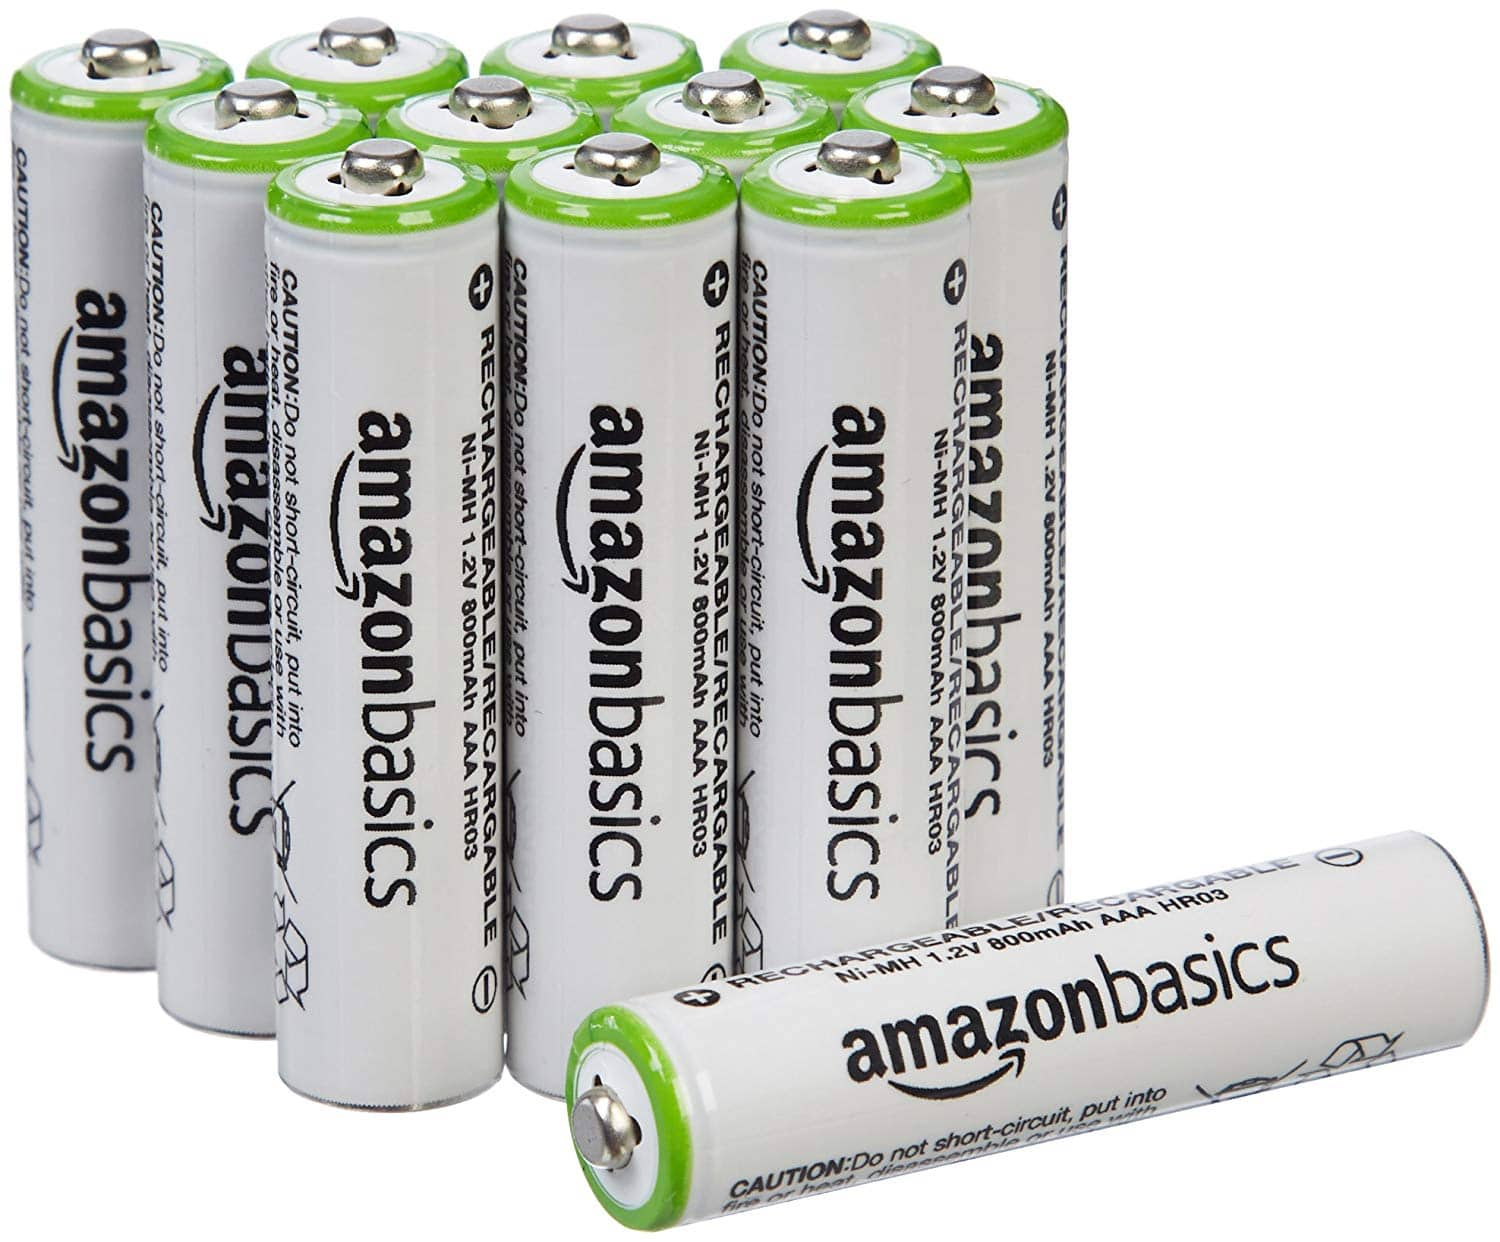 AmazonBasics AAA Rechargeable Batteries (12-Pack) - Packaging May Vary $11.99